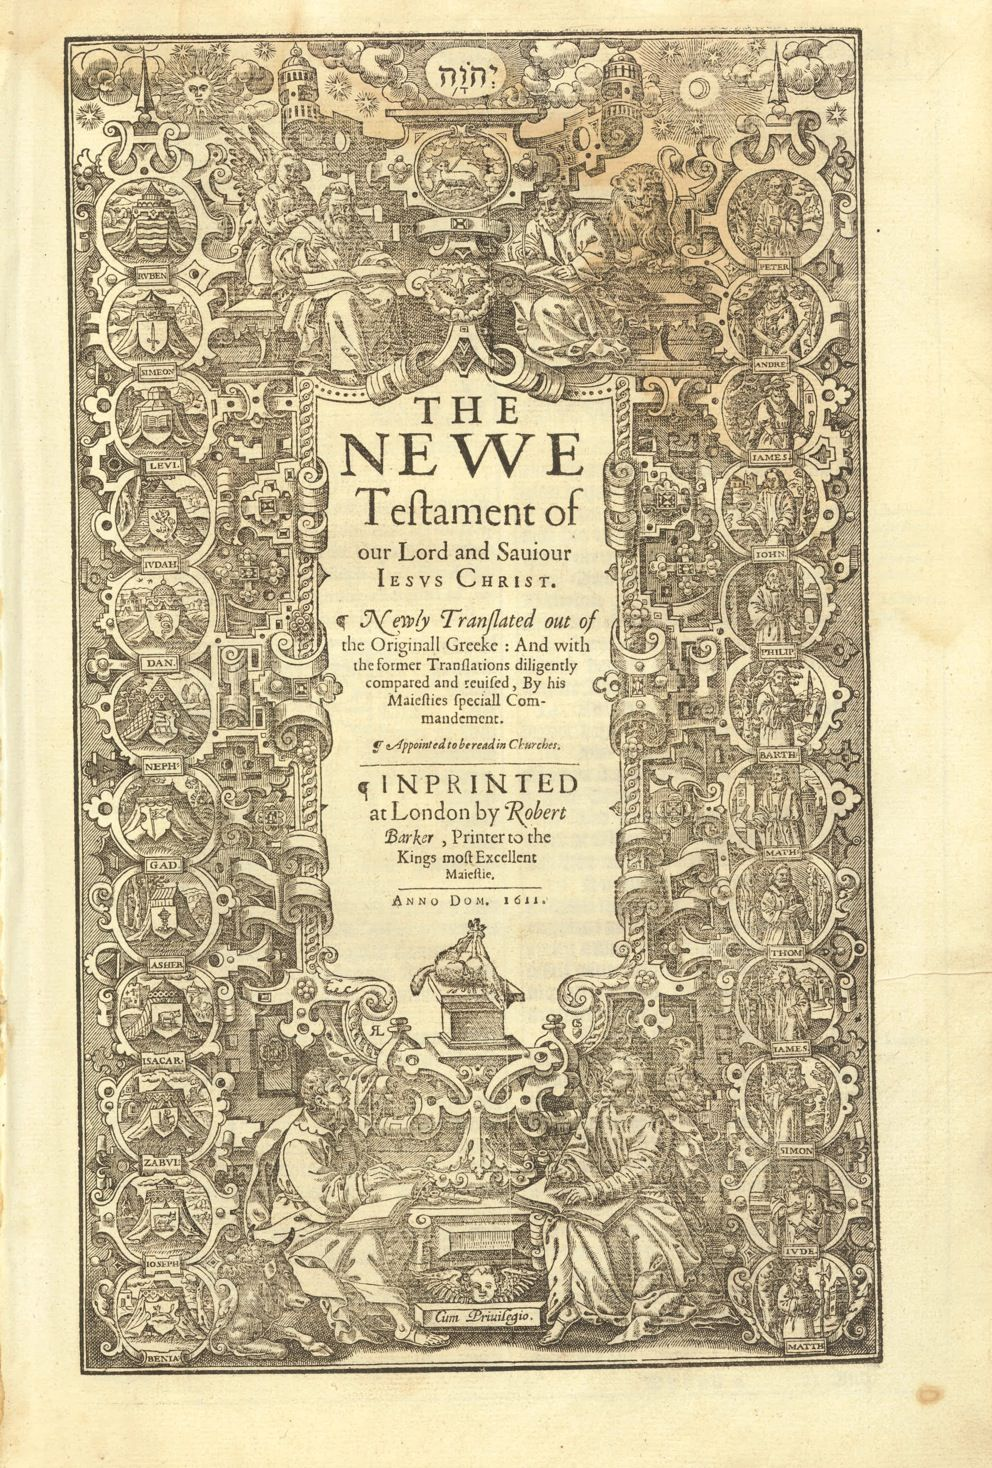 1611 King James Bible First Edition : The New Testament